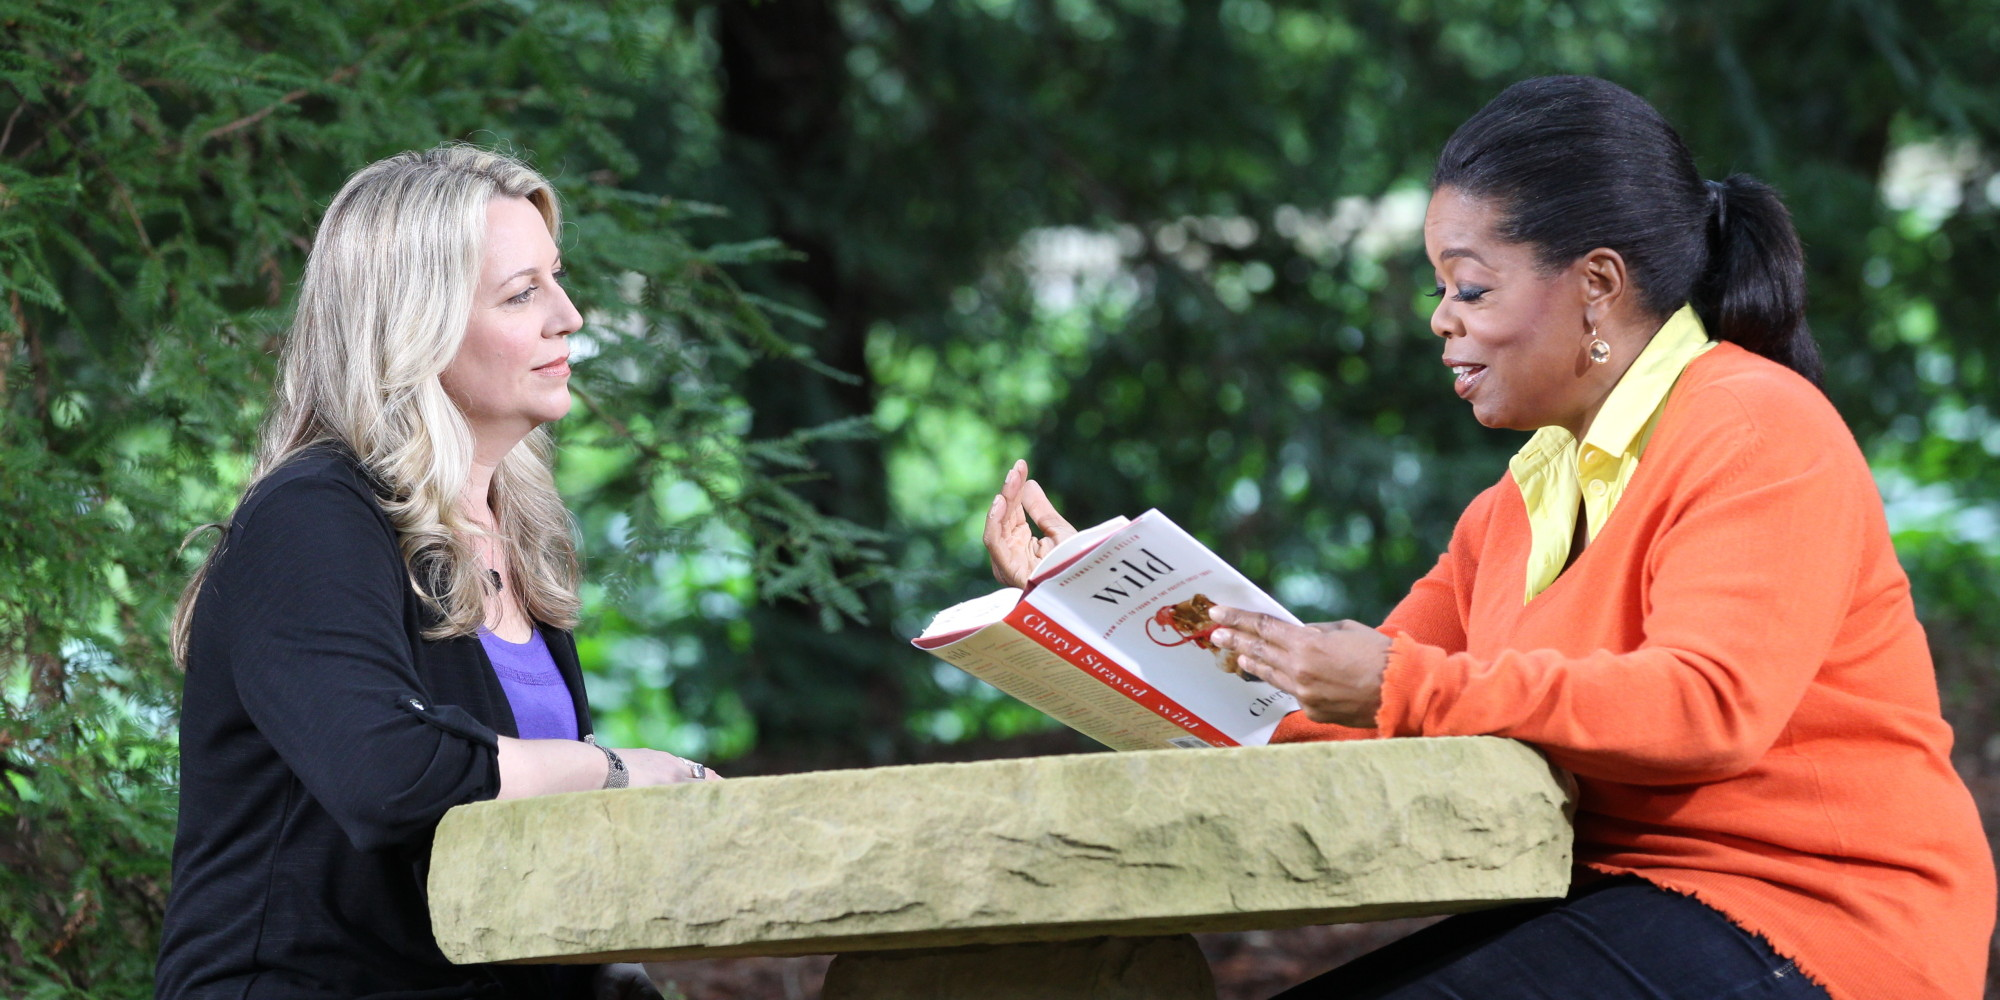 Cheryl Strayed in an  interview with Oprah  on her memoir  Wild: From Lost to Found on The Pacific Crest Trail.  Oprah relaunched her book club ( Oprah's Book Club 2.0 ) so she could share Cheryl's story with everyone. Image via  Google .